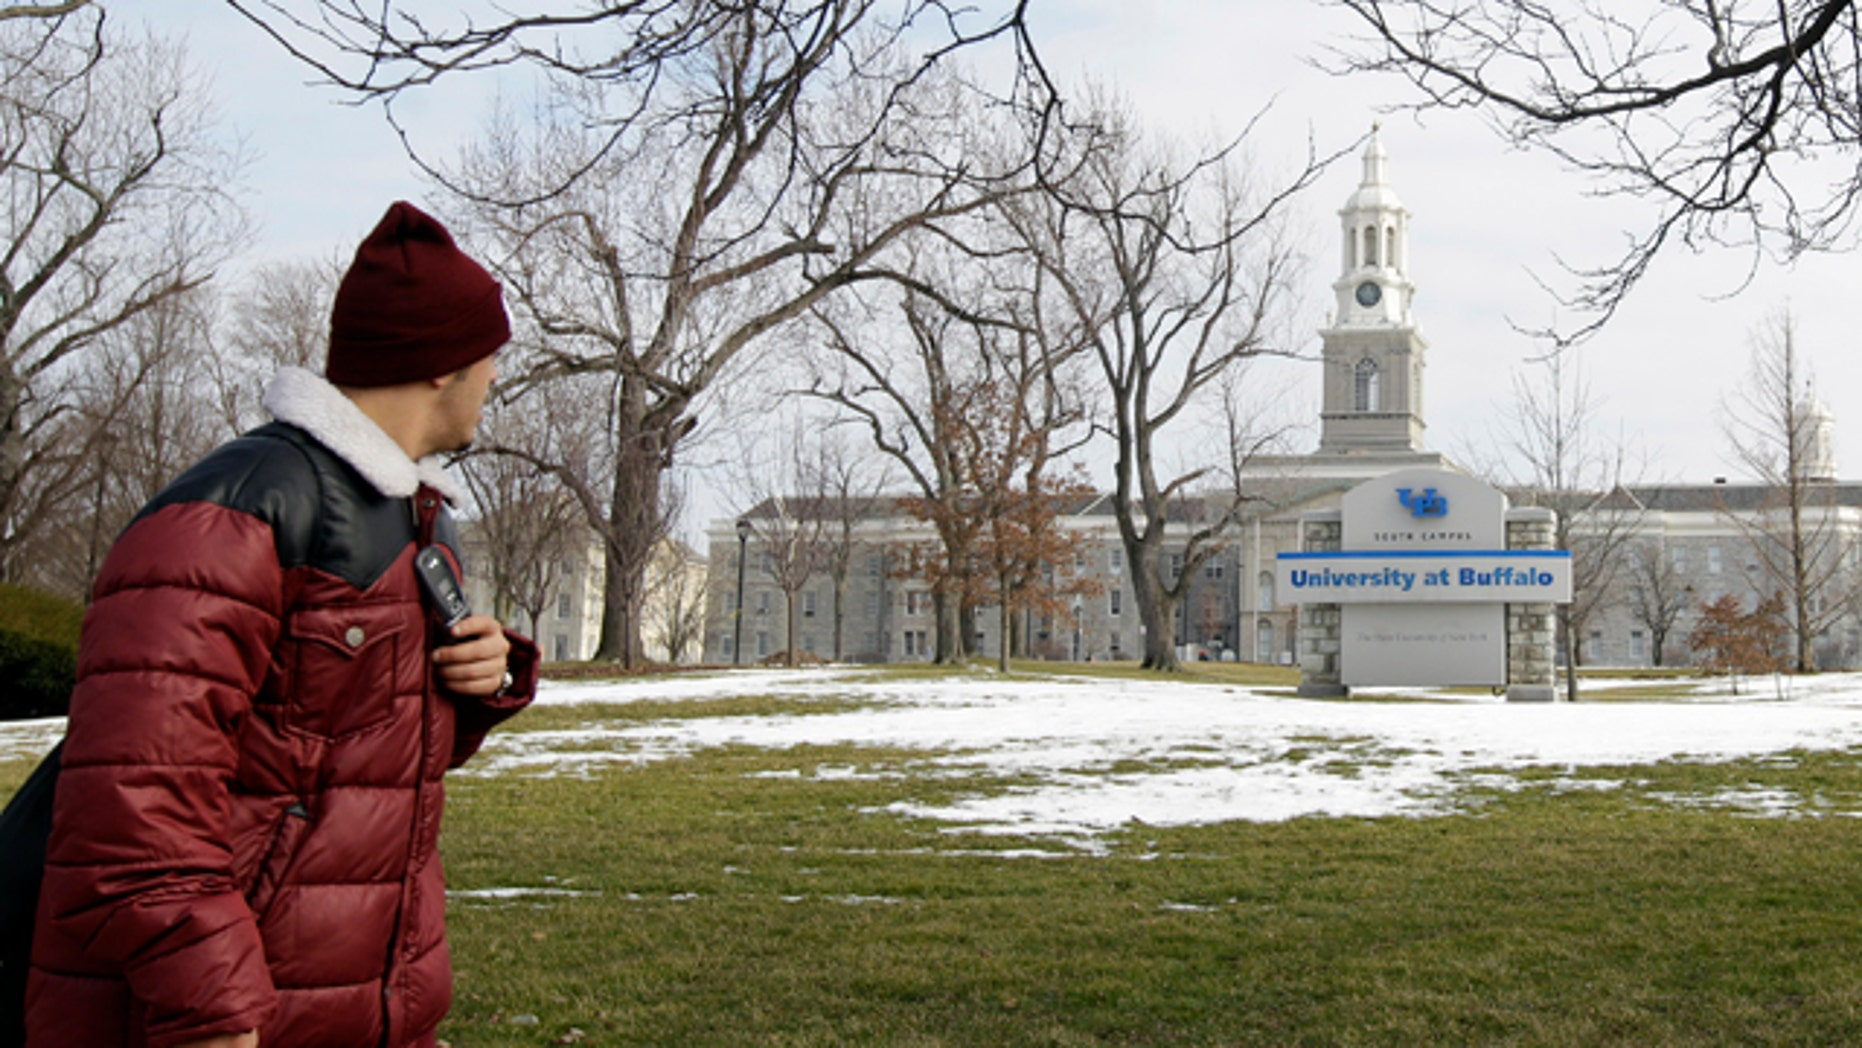 Feb. 15, 2012: A person walks on the University at Buffalo campus in Buffalo, N.Y. The New York Police Department monitored Muslim college students far more broadly than previously known, at schools far beyond the city limits, including the University at Buffalo, the Ivy League colleges of Yale and the University of Pennsylvania, The Associated Press has learned.